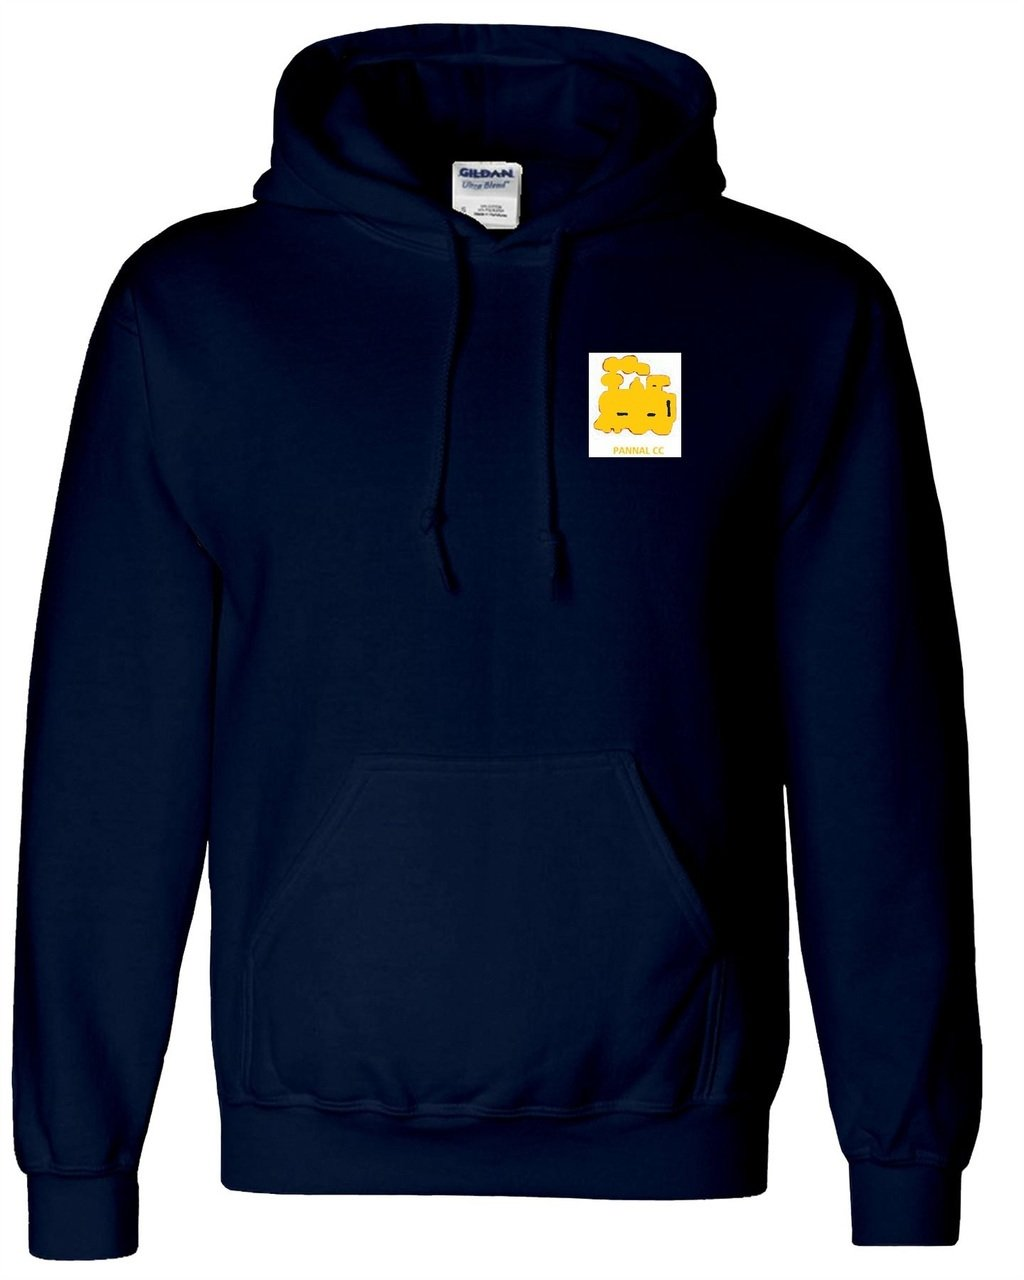 Pannal Junior Navy Hooded Top